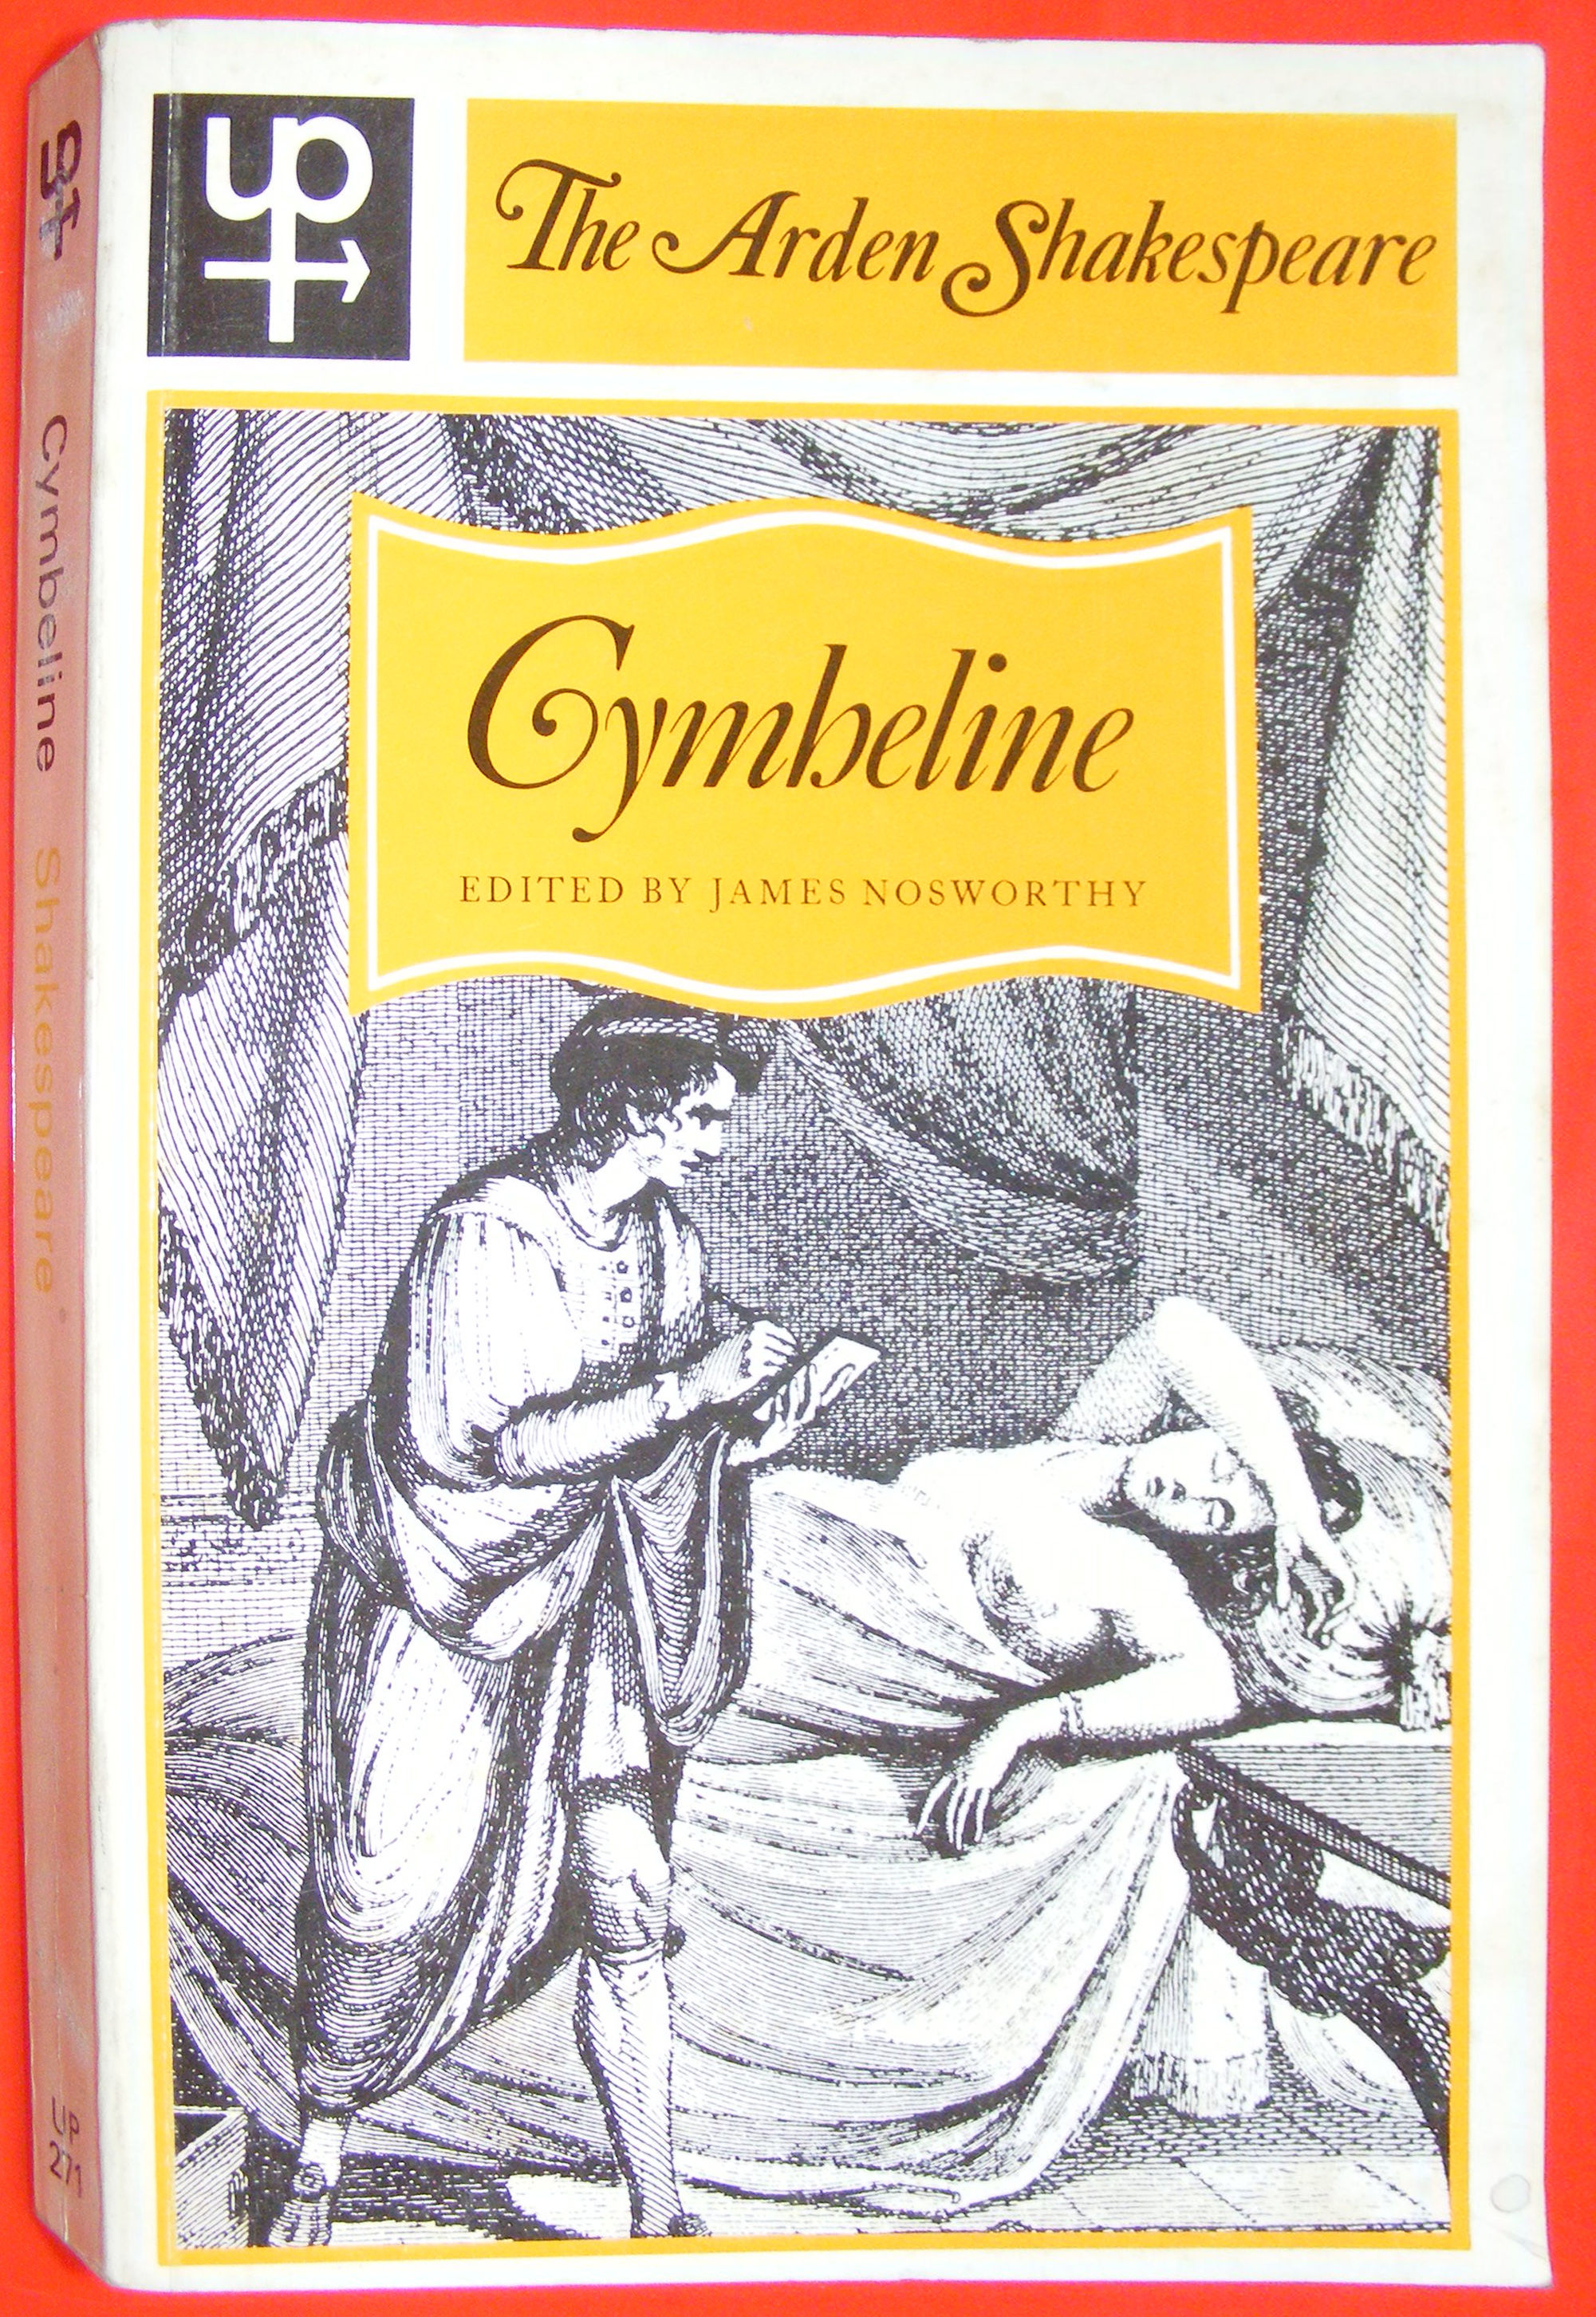 Cymbeline - The Arden Shakespeare by Nosworthy, James - 1969